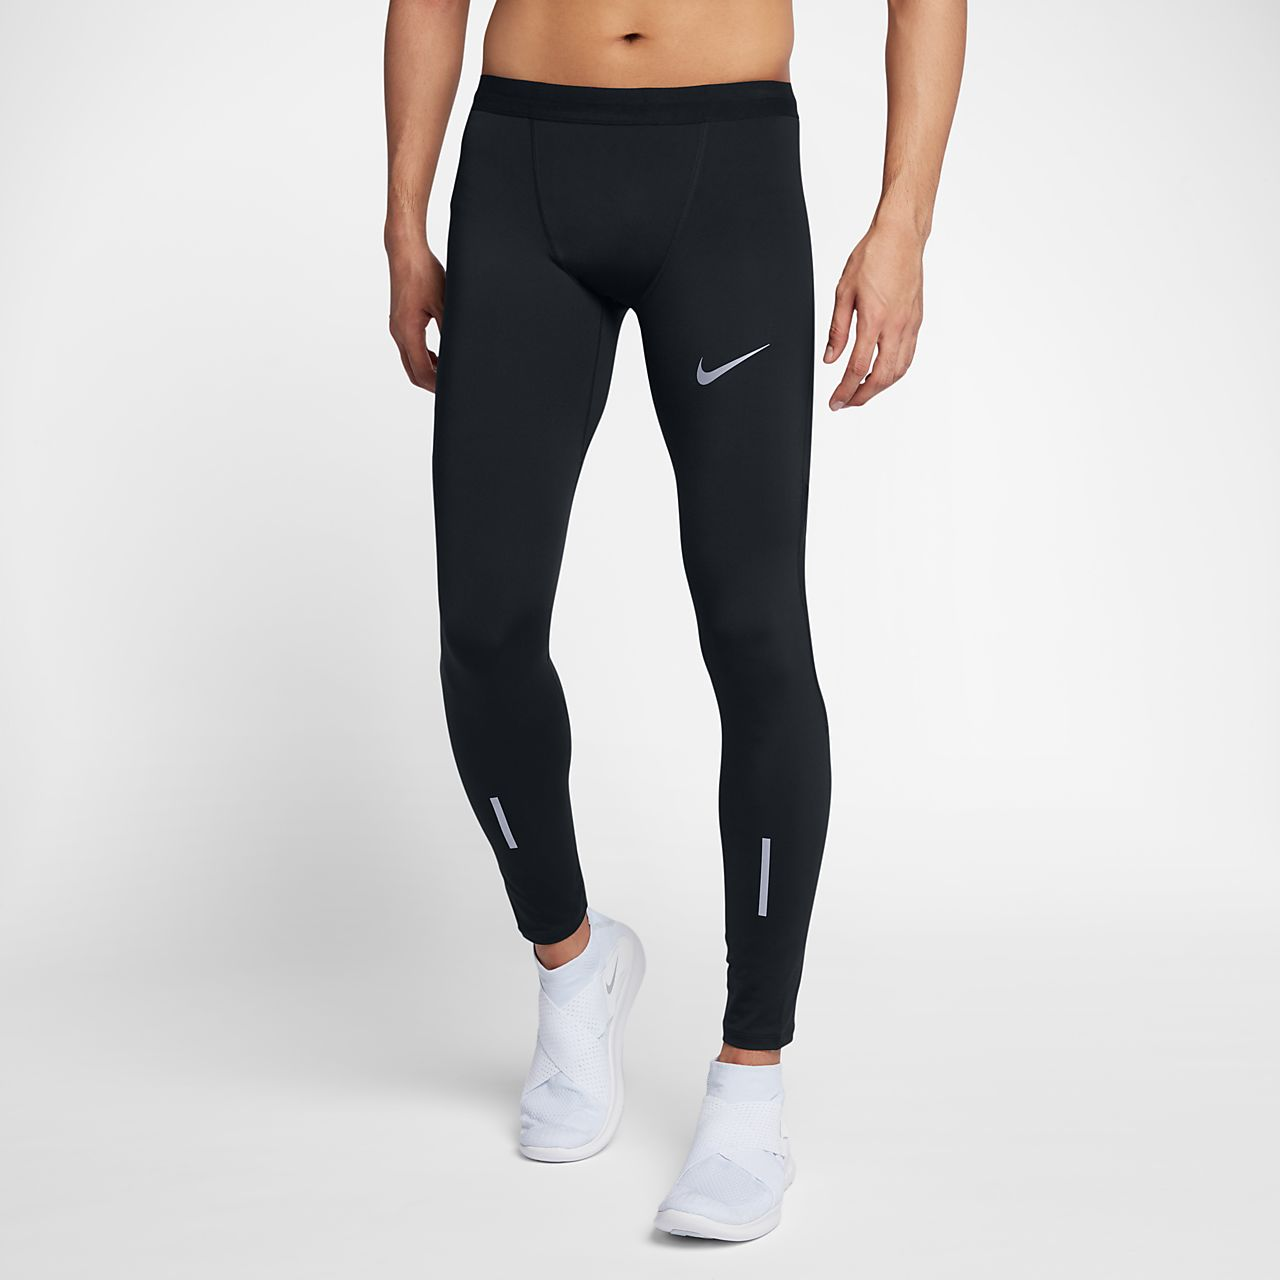 bae451f5a652 Nike Tech Men s 72cm Running Tights. Nike.com GB